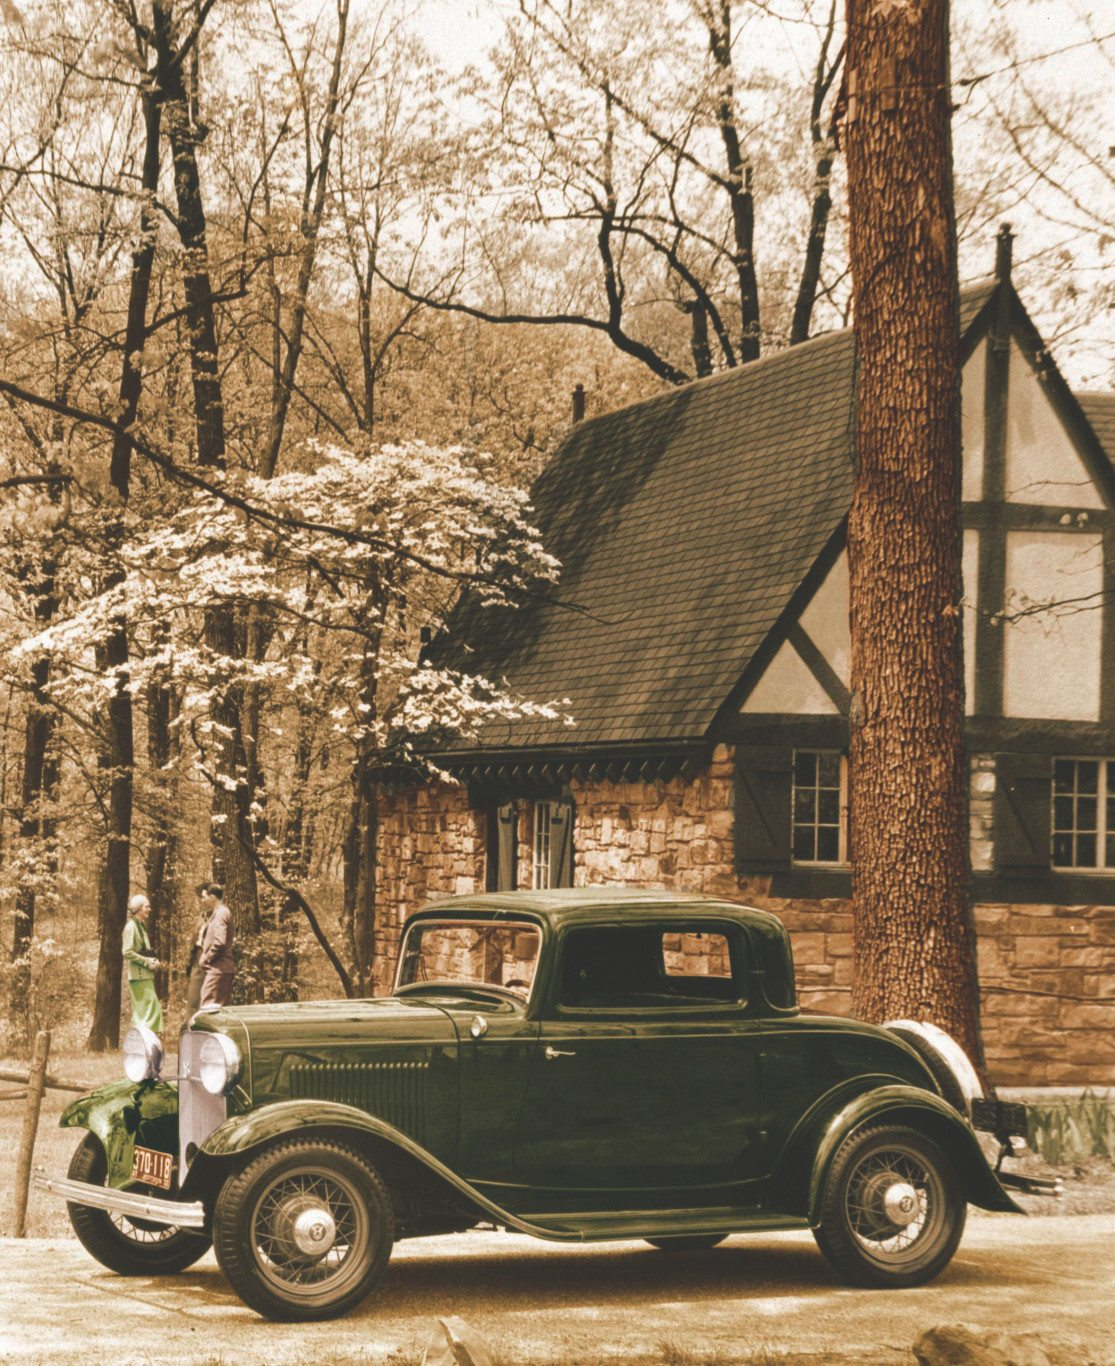 The 1932 Ford Heacock Classic Insurance